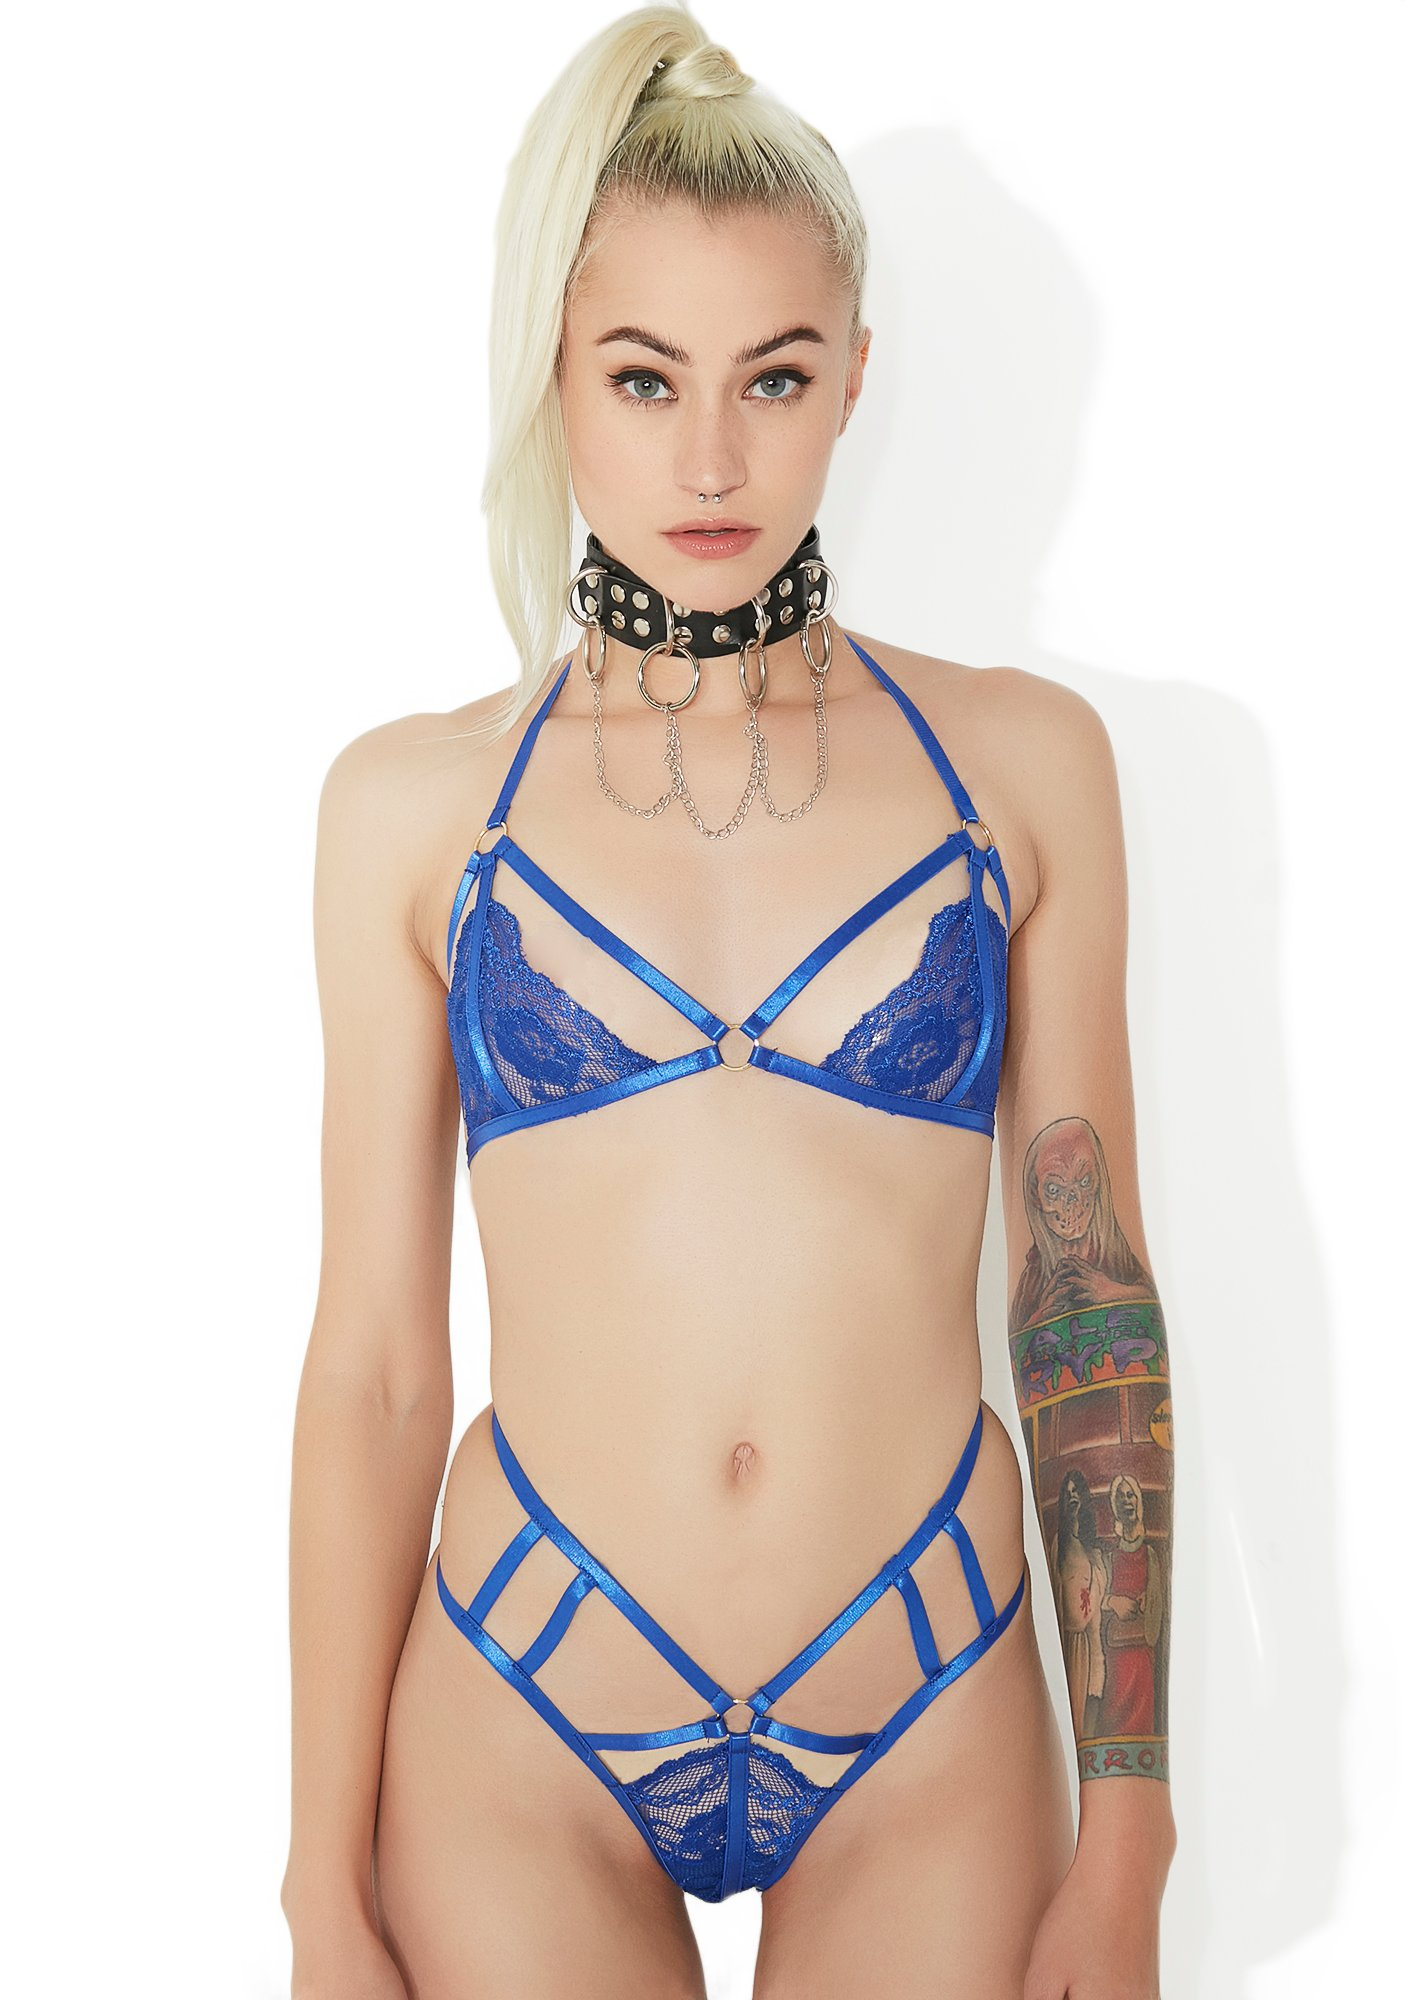 Lace Cage Harness Lingerie Set Blue